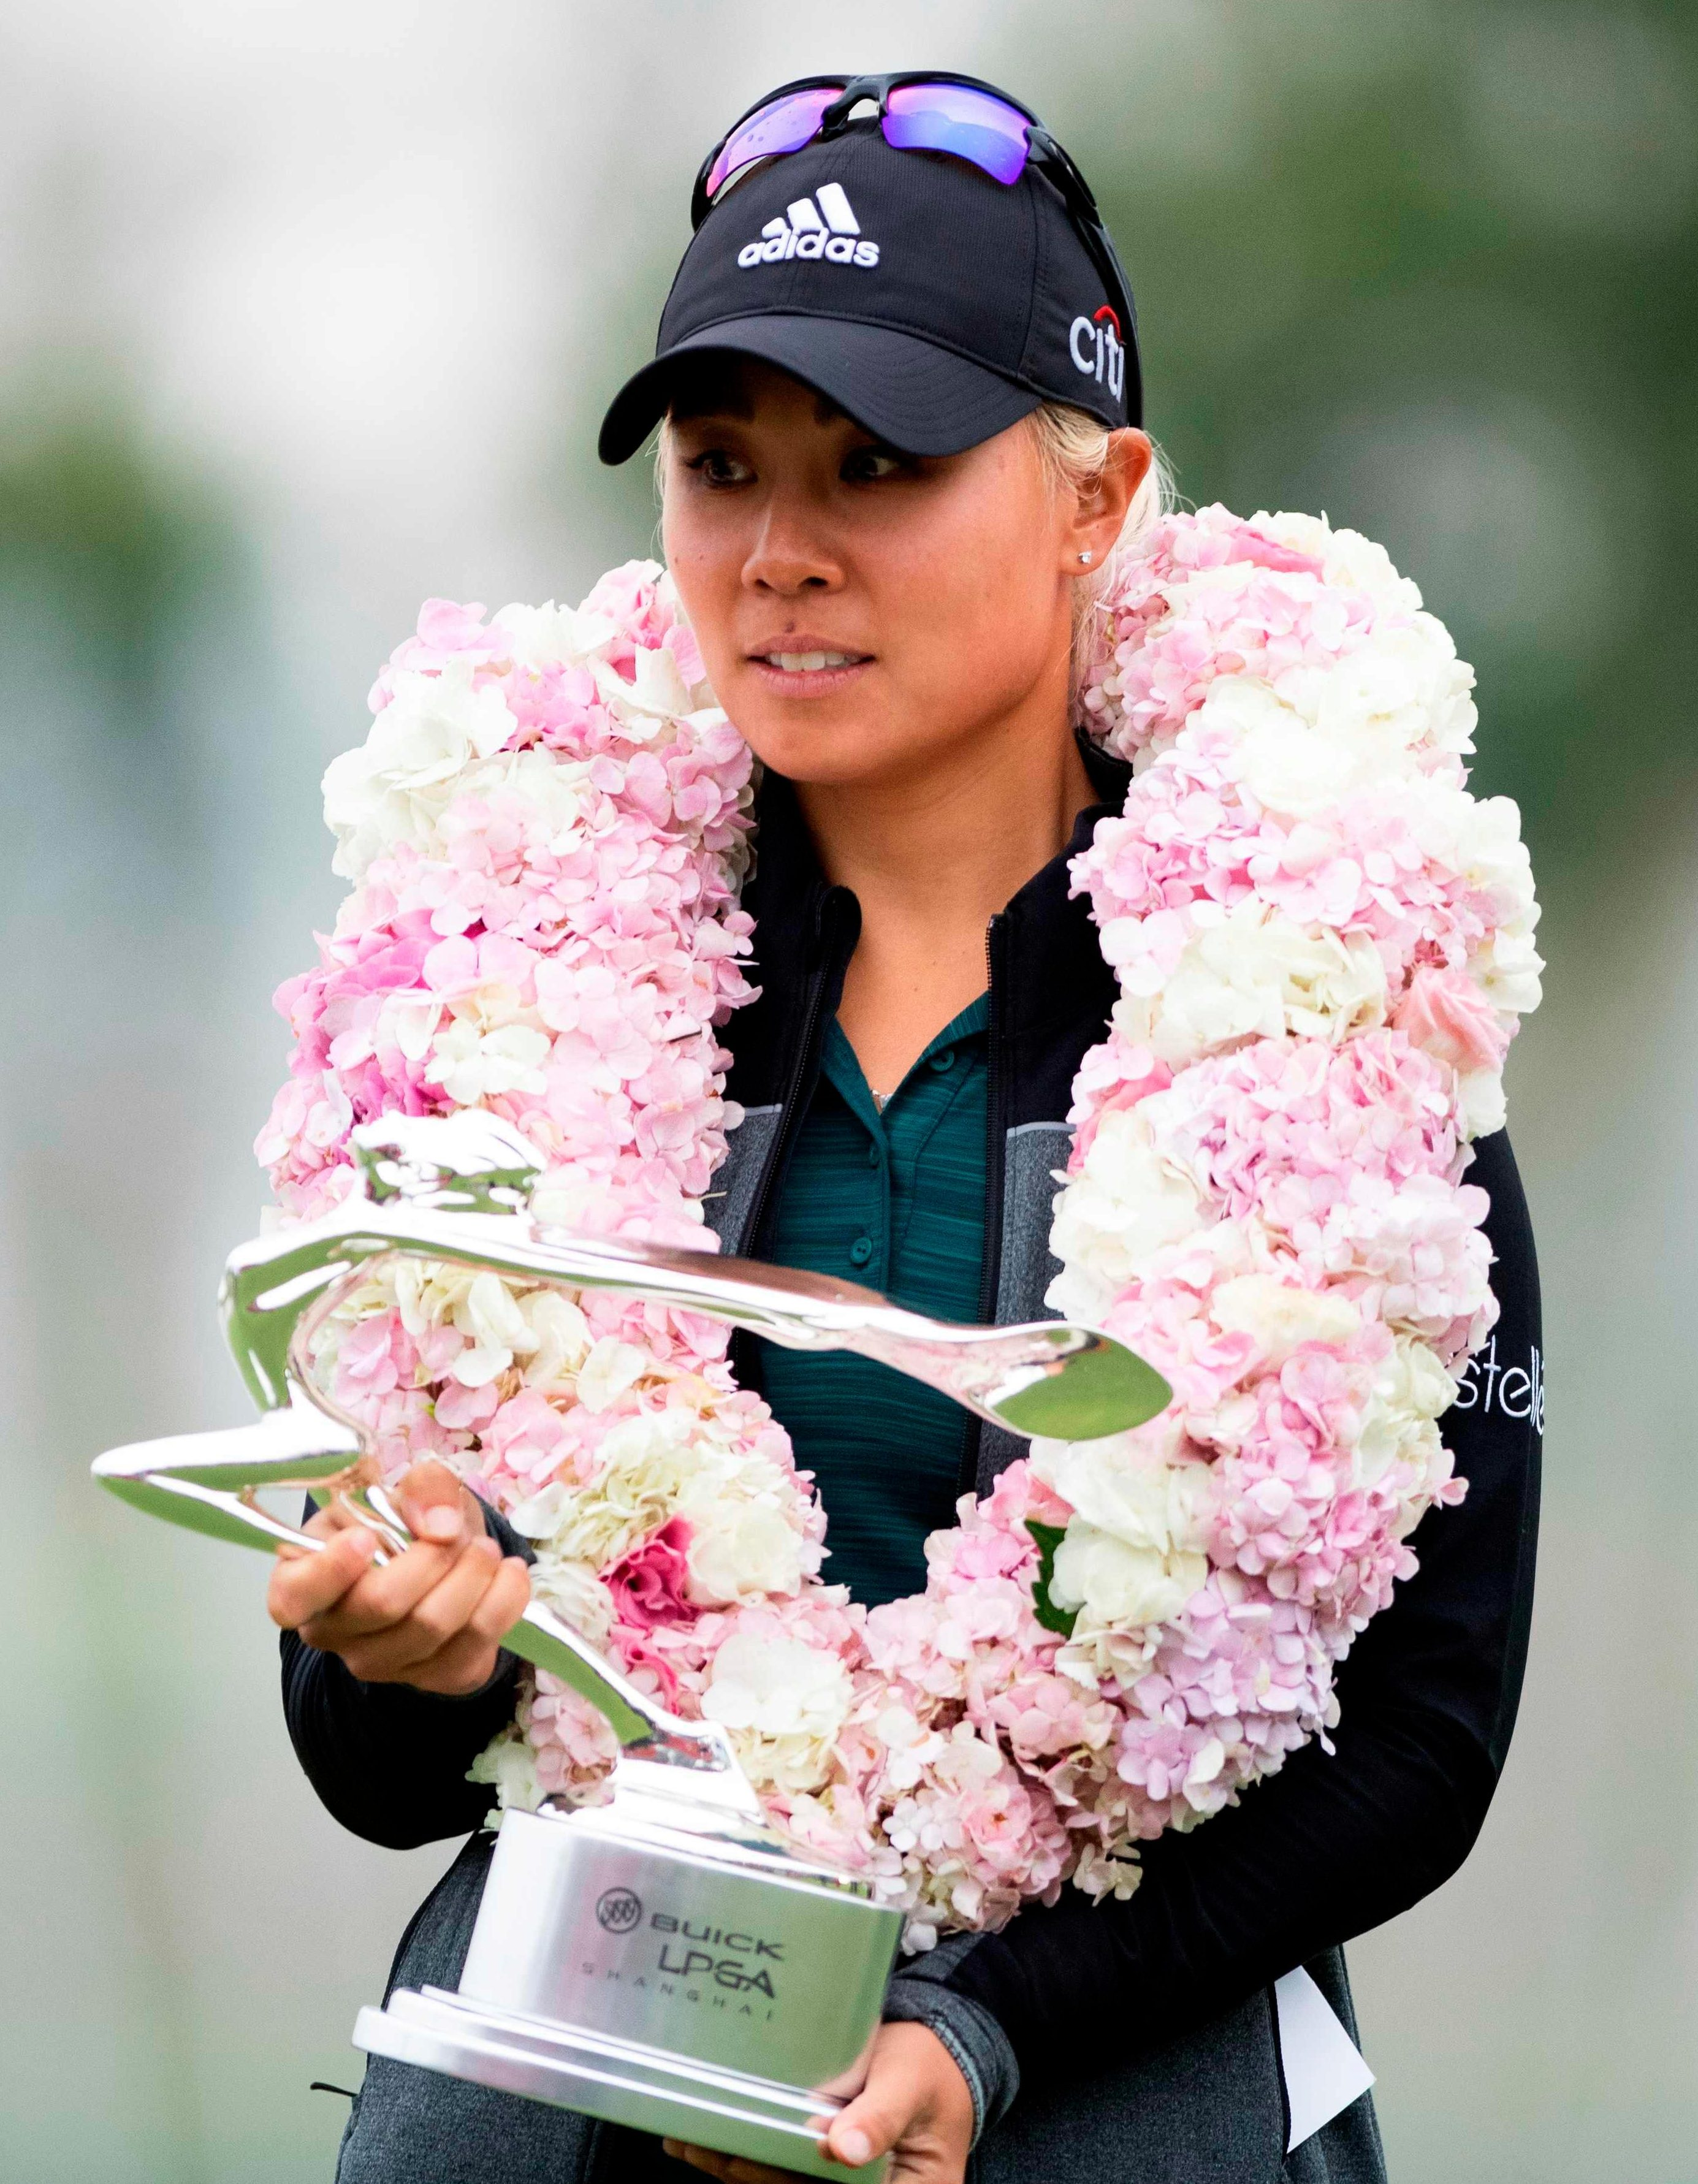 Victory was a garland occasion for Danielle Kang, whose talent has not been matched by her number of tournament triumphs - just two so far